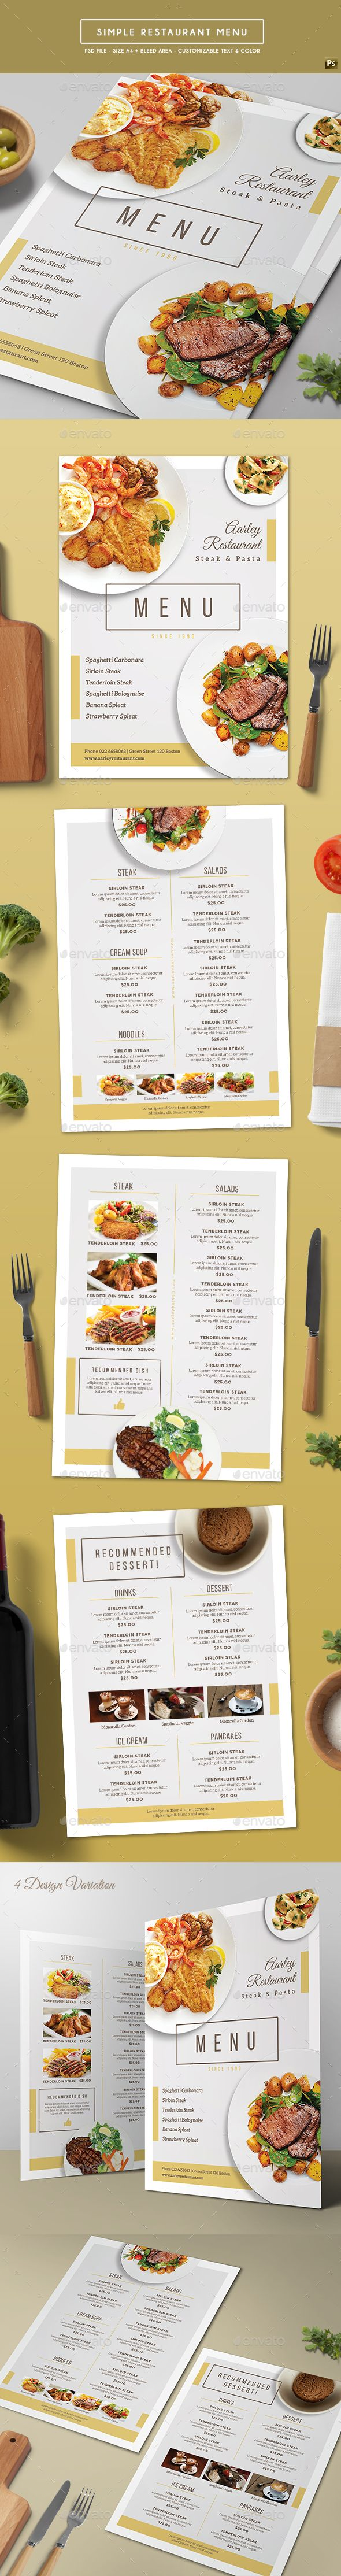 Simple Restaurant Menu - Food Menus Print Templates